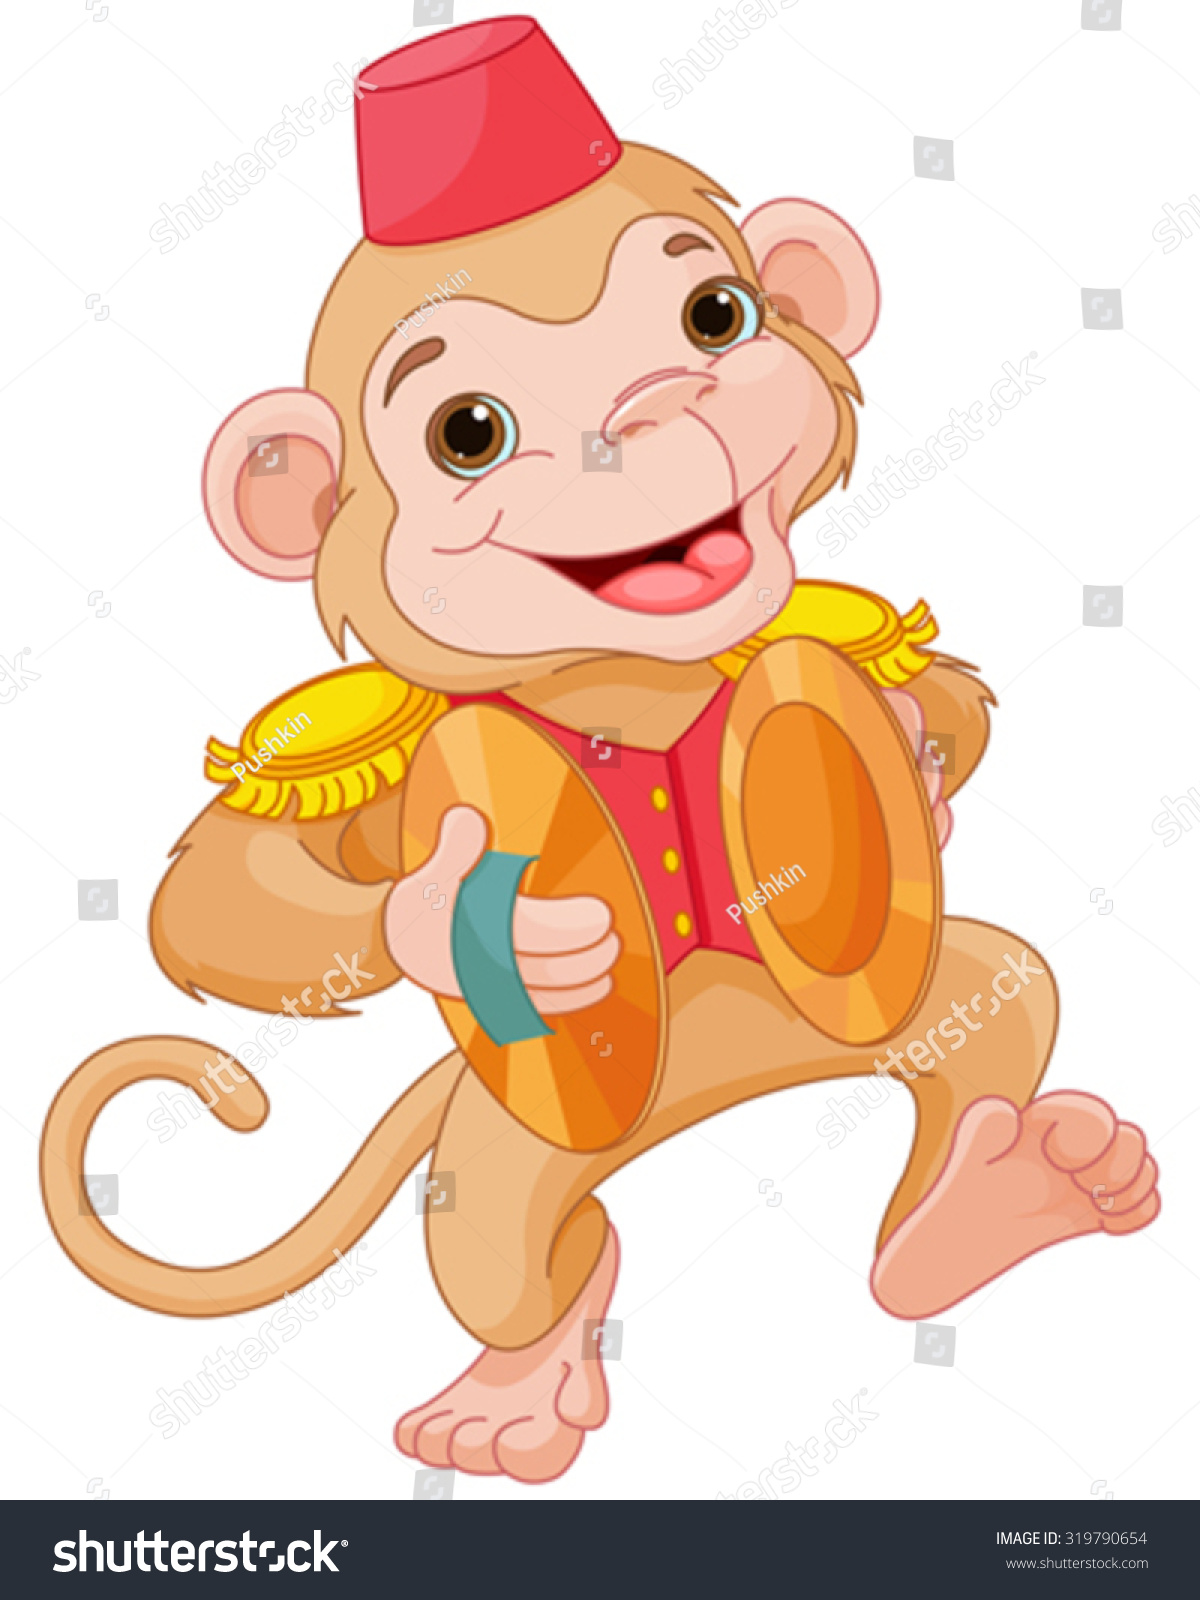 Illustration Cute Monkey Playing Percussion Hand Stock Vector ...